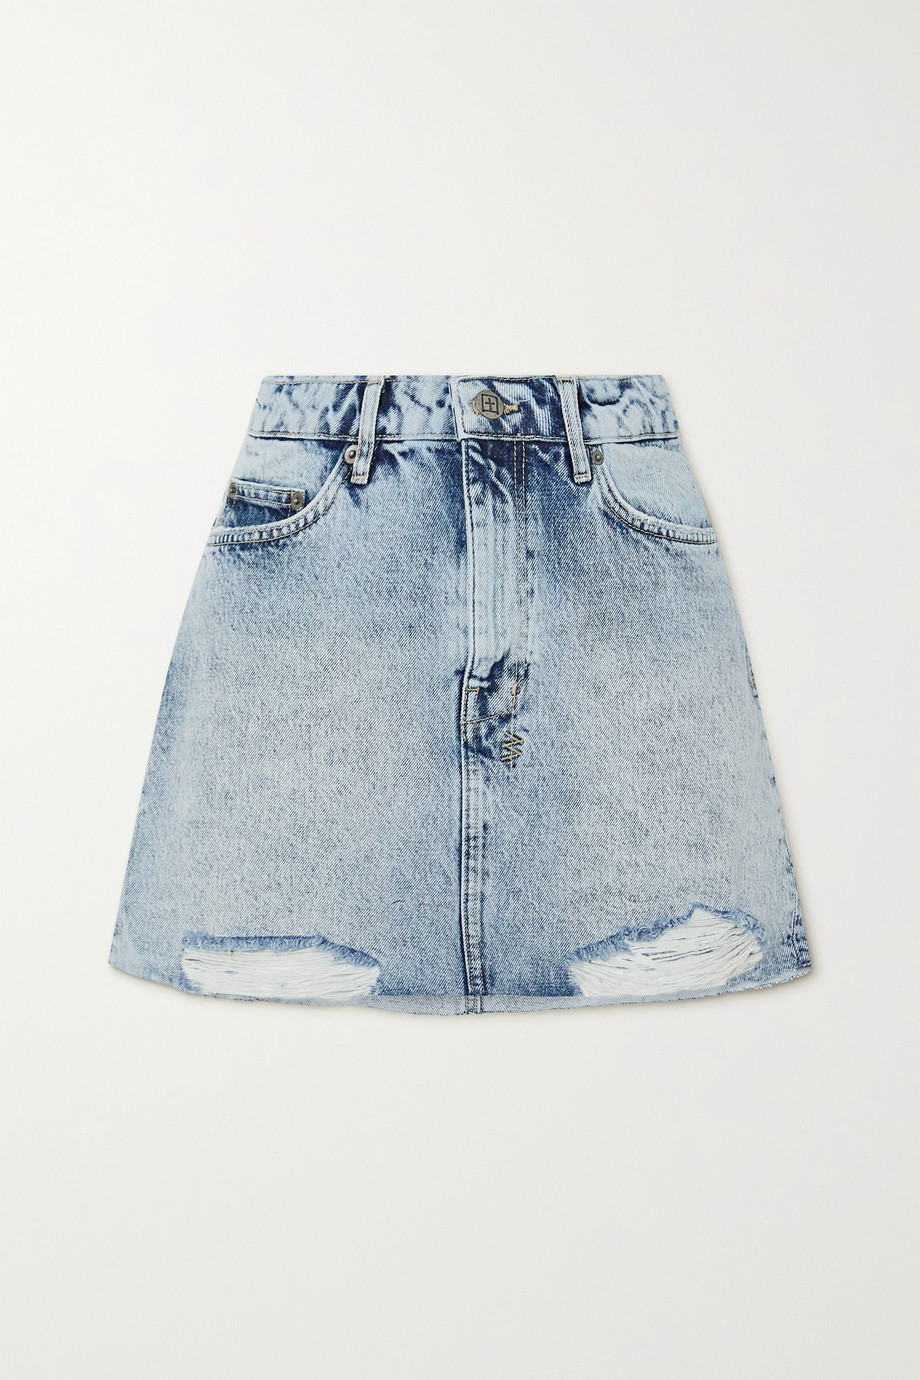 Ksubi Mini-Jeansrock in Acid-Waschung und Distressed-Optik